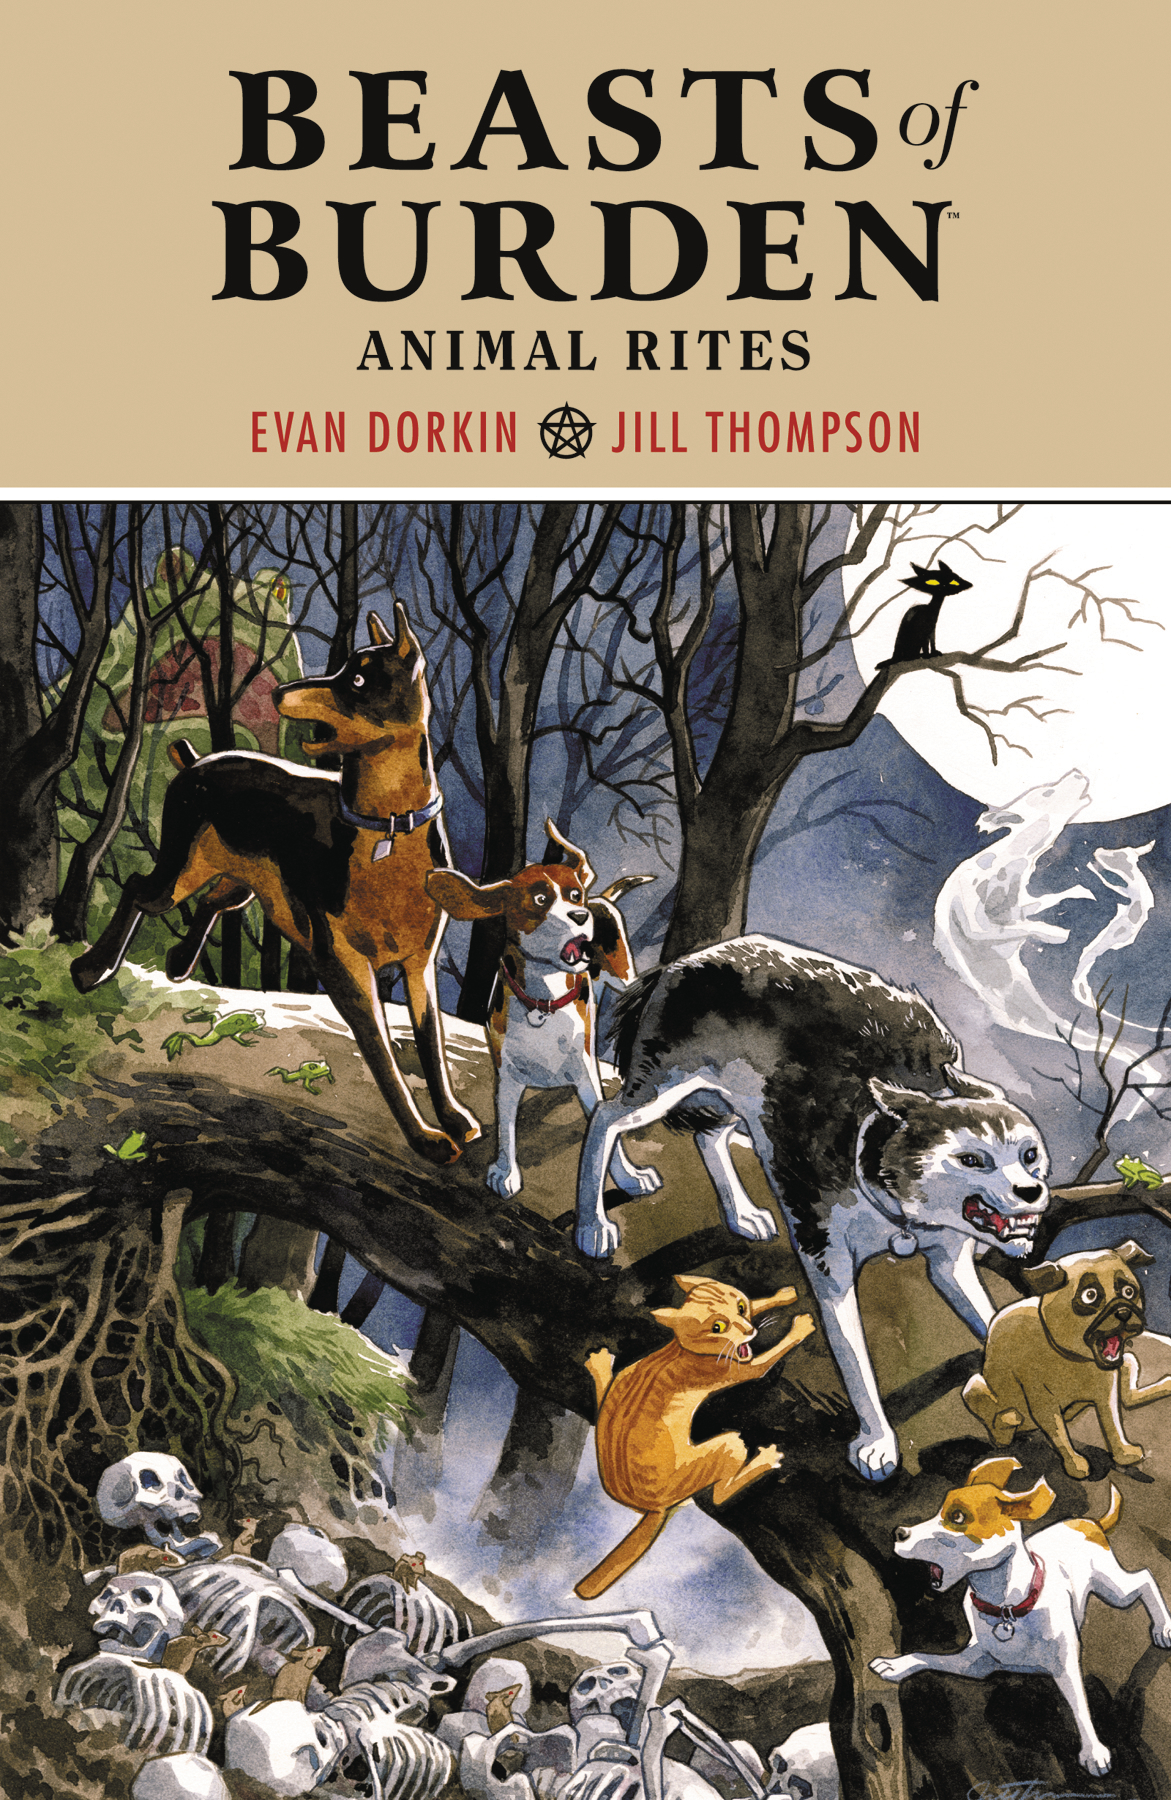 BEASTS OF BURDEN ANIMAL RITES TP (JAN180121)